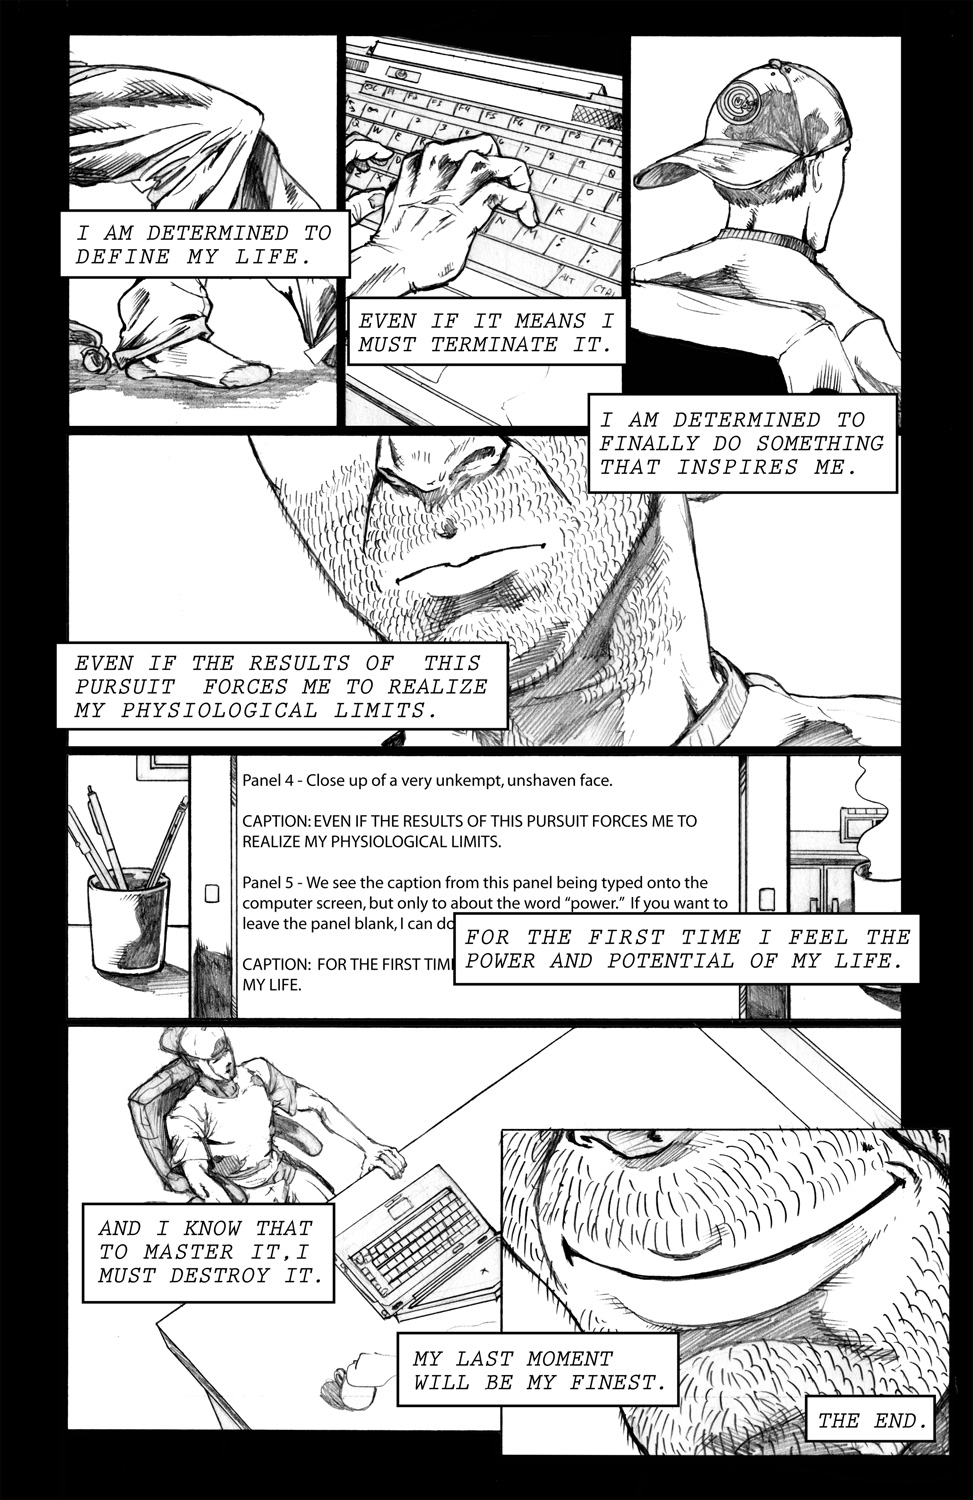 Frozen Man Page 5 (The End)